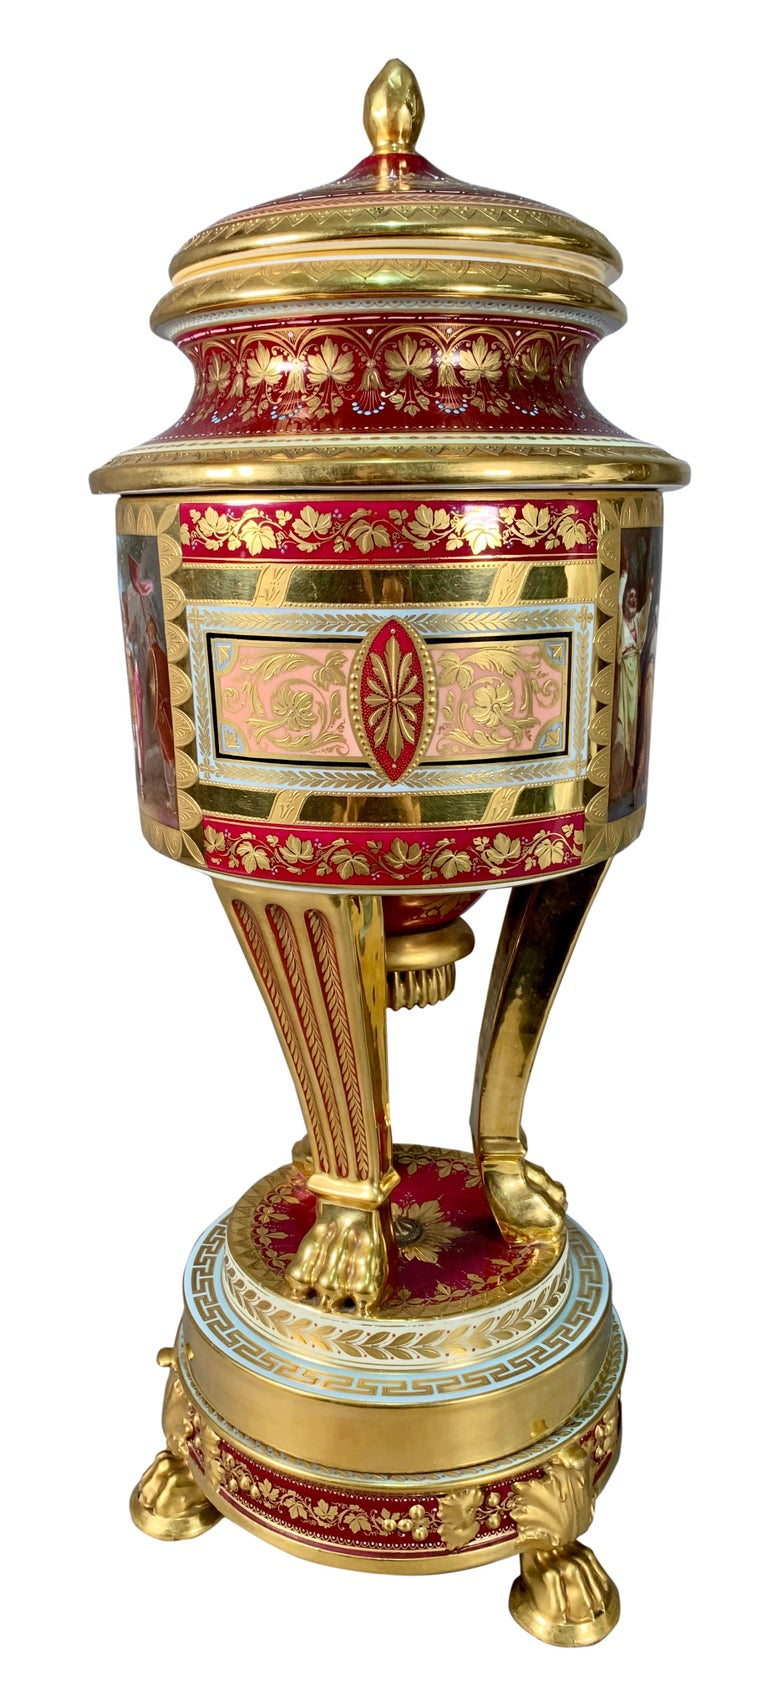 19th Century Royal Vienna Porcelain Urn / Vase In Excellent Condition For Sale In Los Angeles, CA